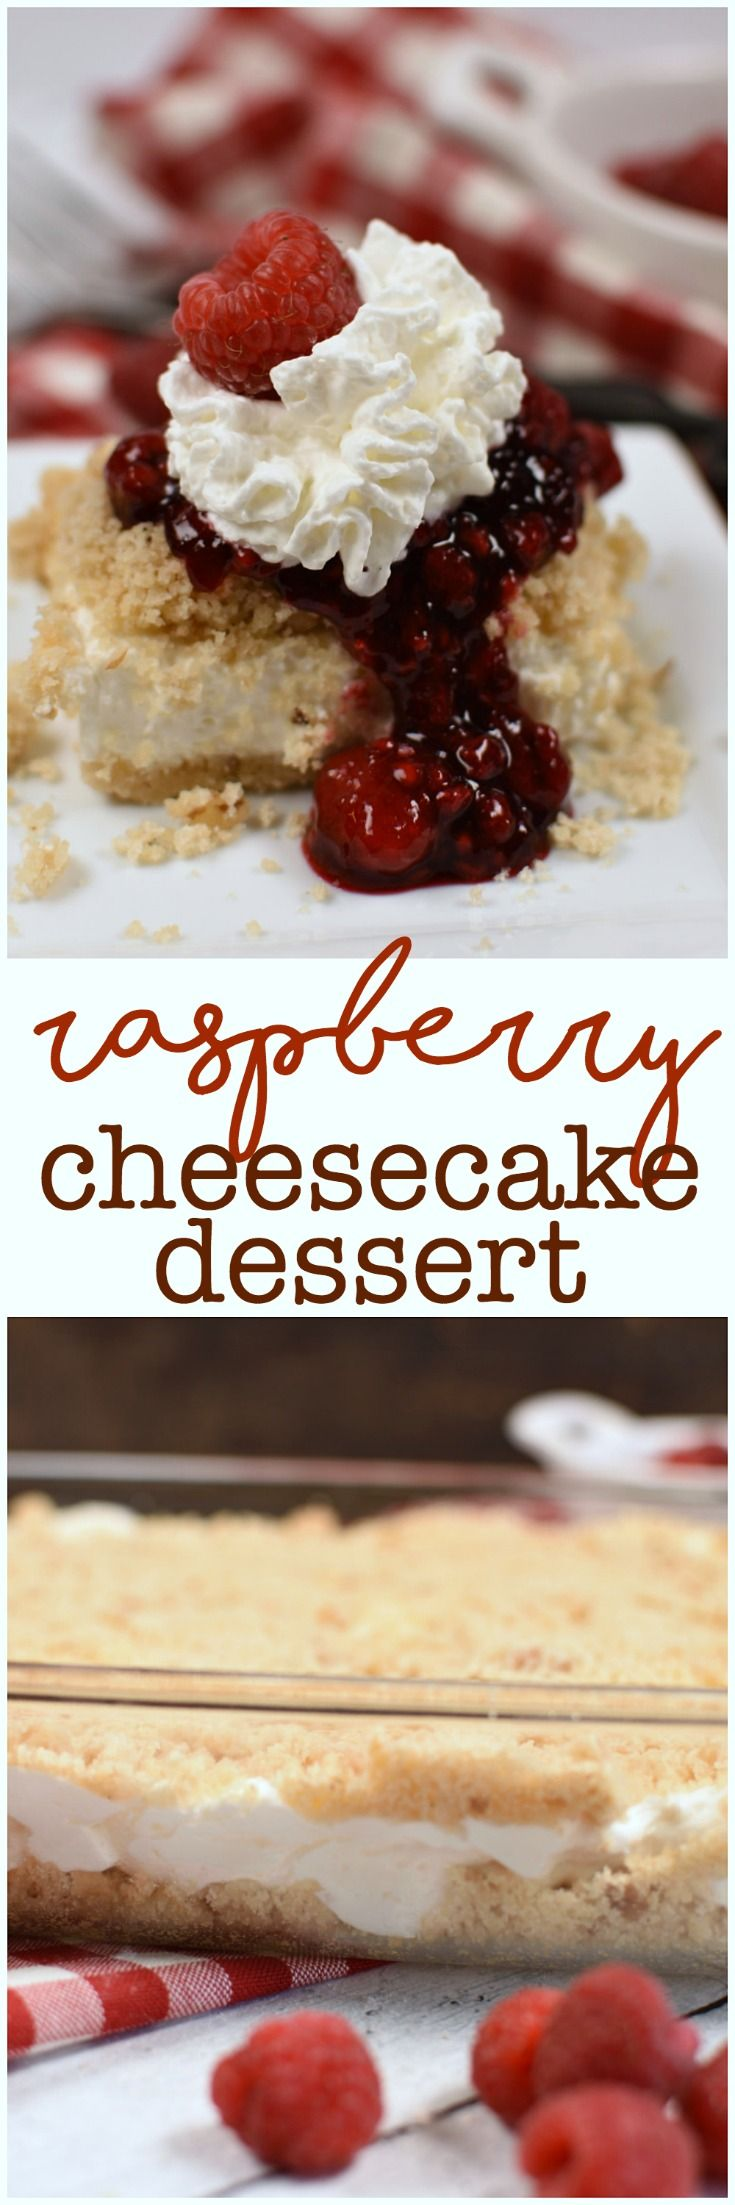 Raspberry Cheesecake Dessert has a buttery crumb crust, and light and fluffy no bake cream cheese filling, and sweet raspberry sauce! It's a crowd pleaser!